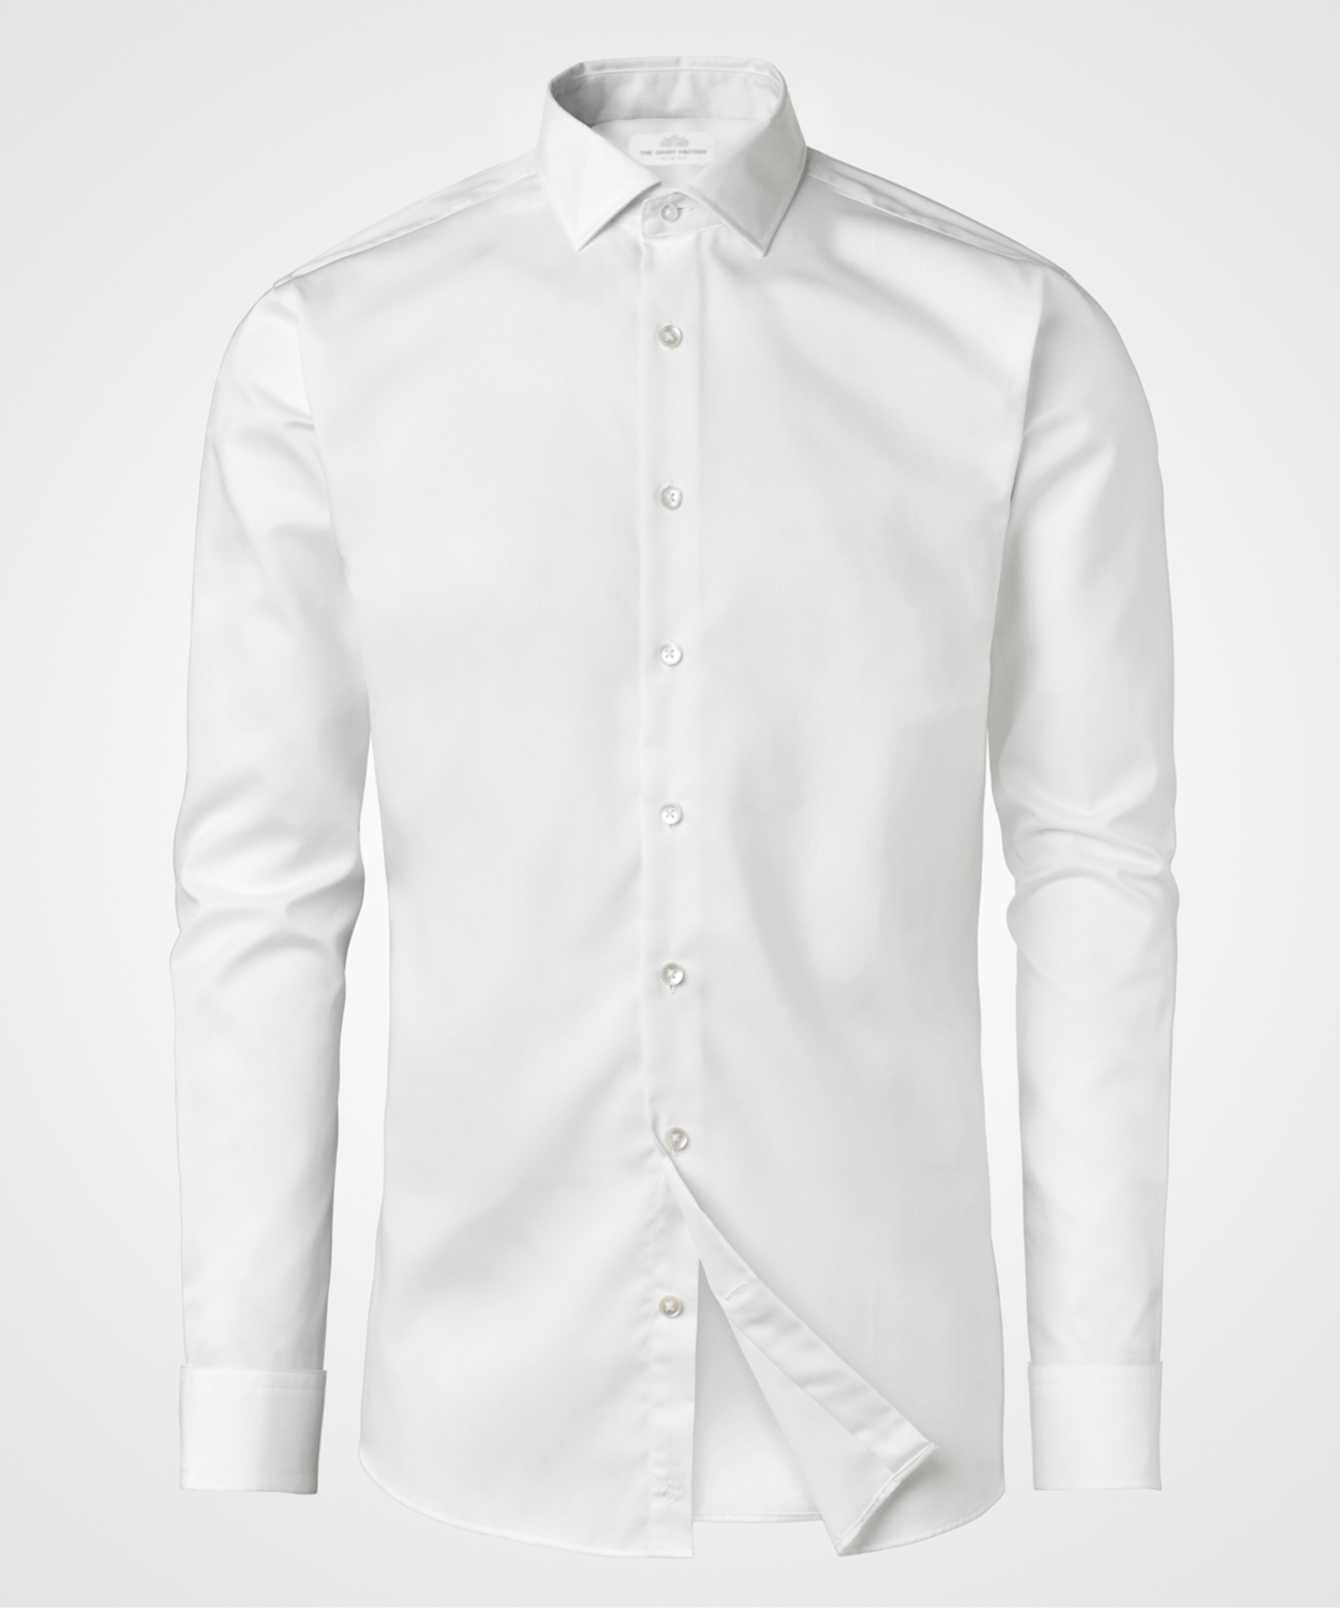 Skjorta Grand Twill Strykfri Vit The Shirt Factory